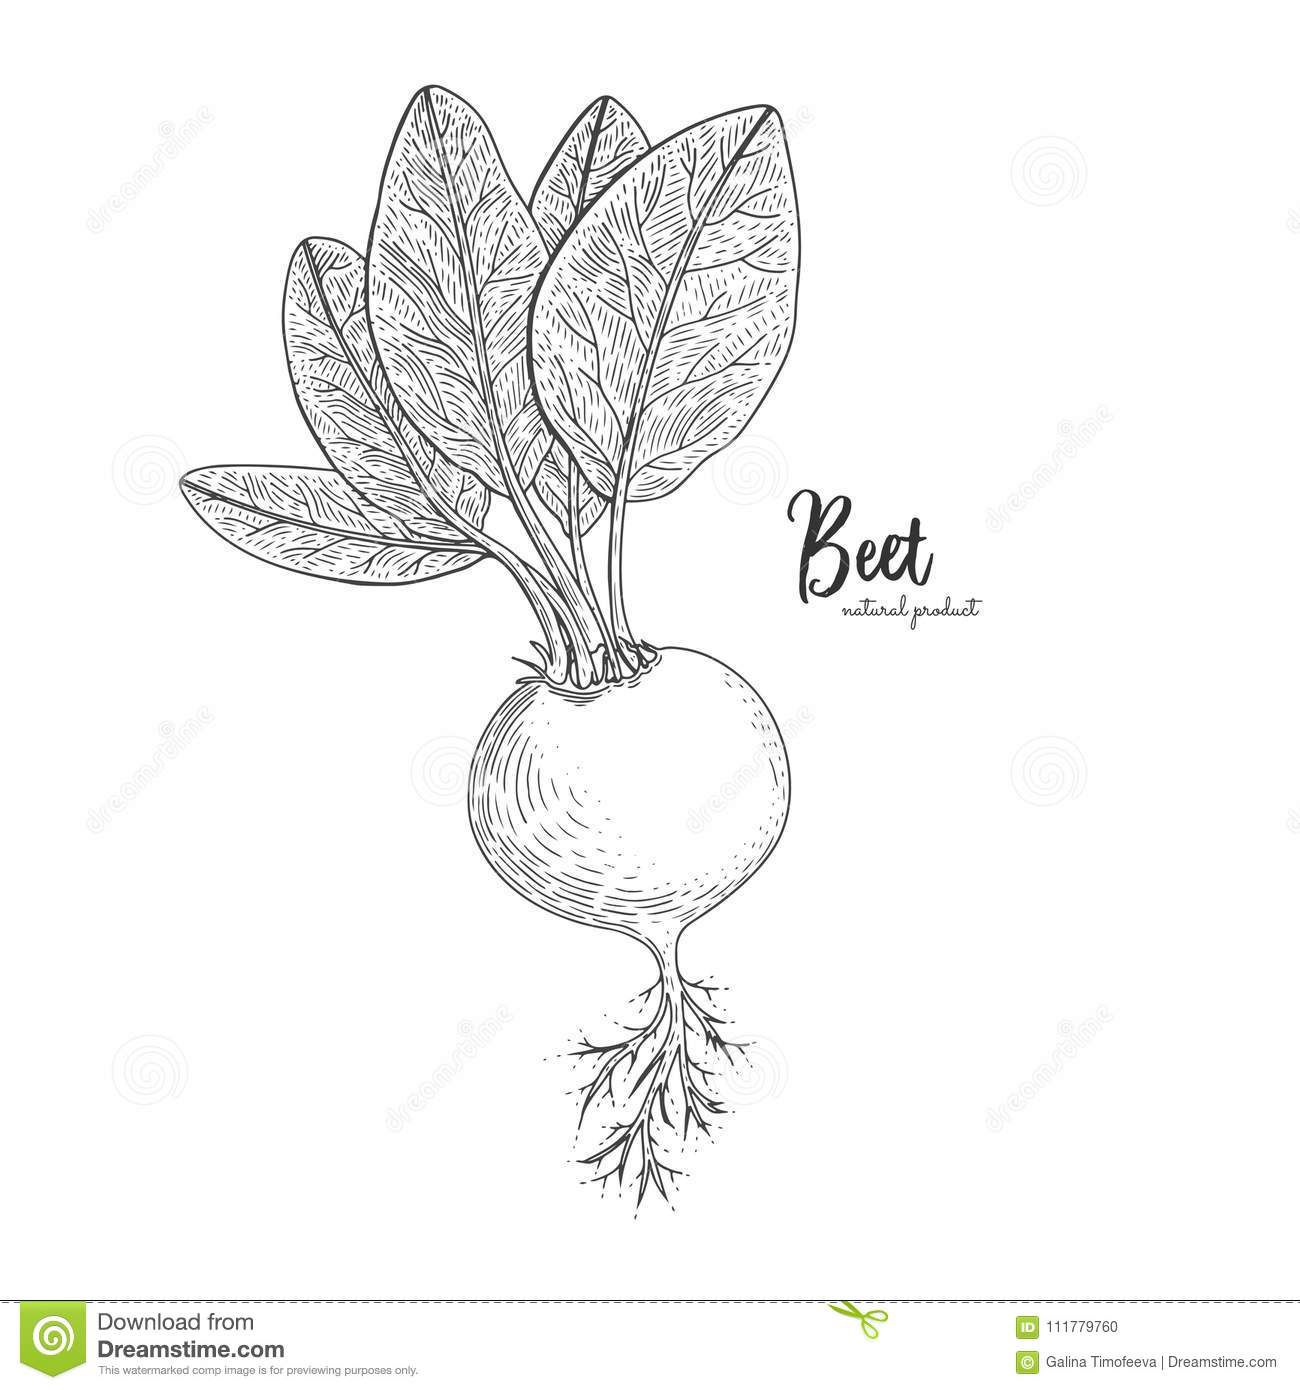 Beet hand drawn vector illustration. Isolated vegetable engraved style object. Detailed vegetarian food drawing. Farm